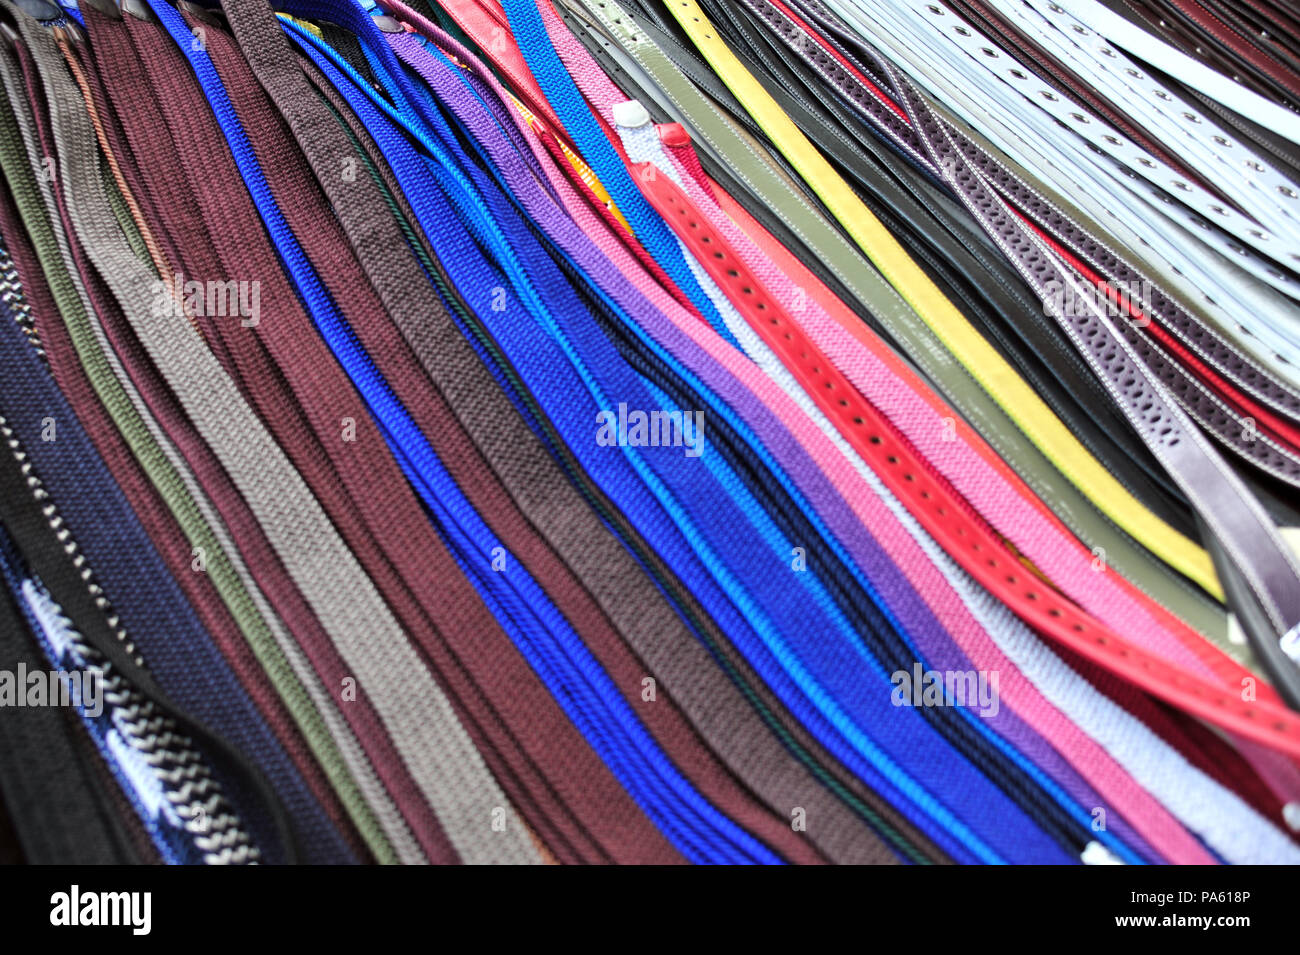 Colourful Mens belts on display at a clothes market held each week in Beziers, France - Stock Image